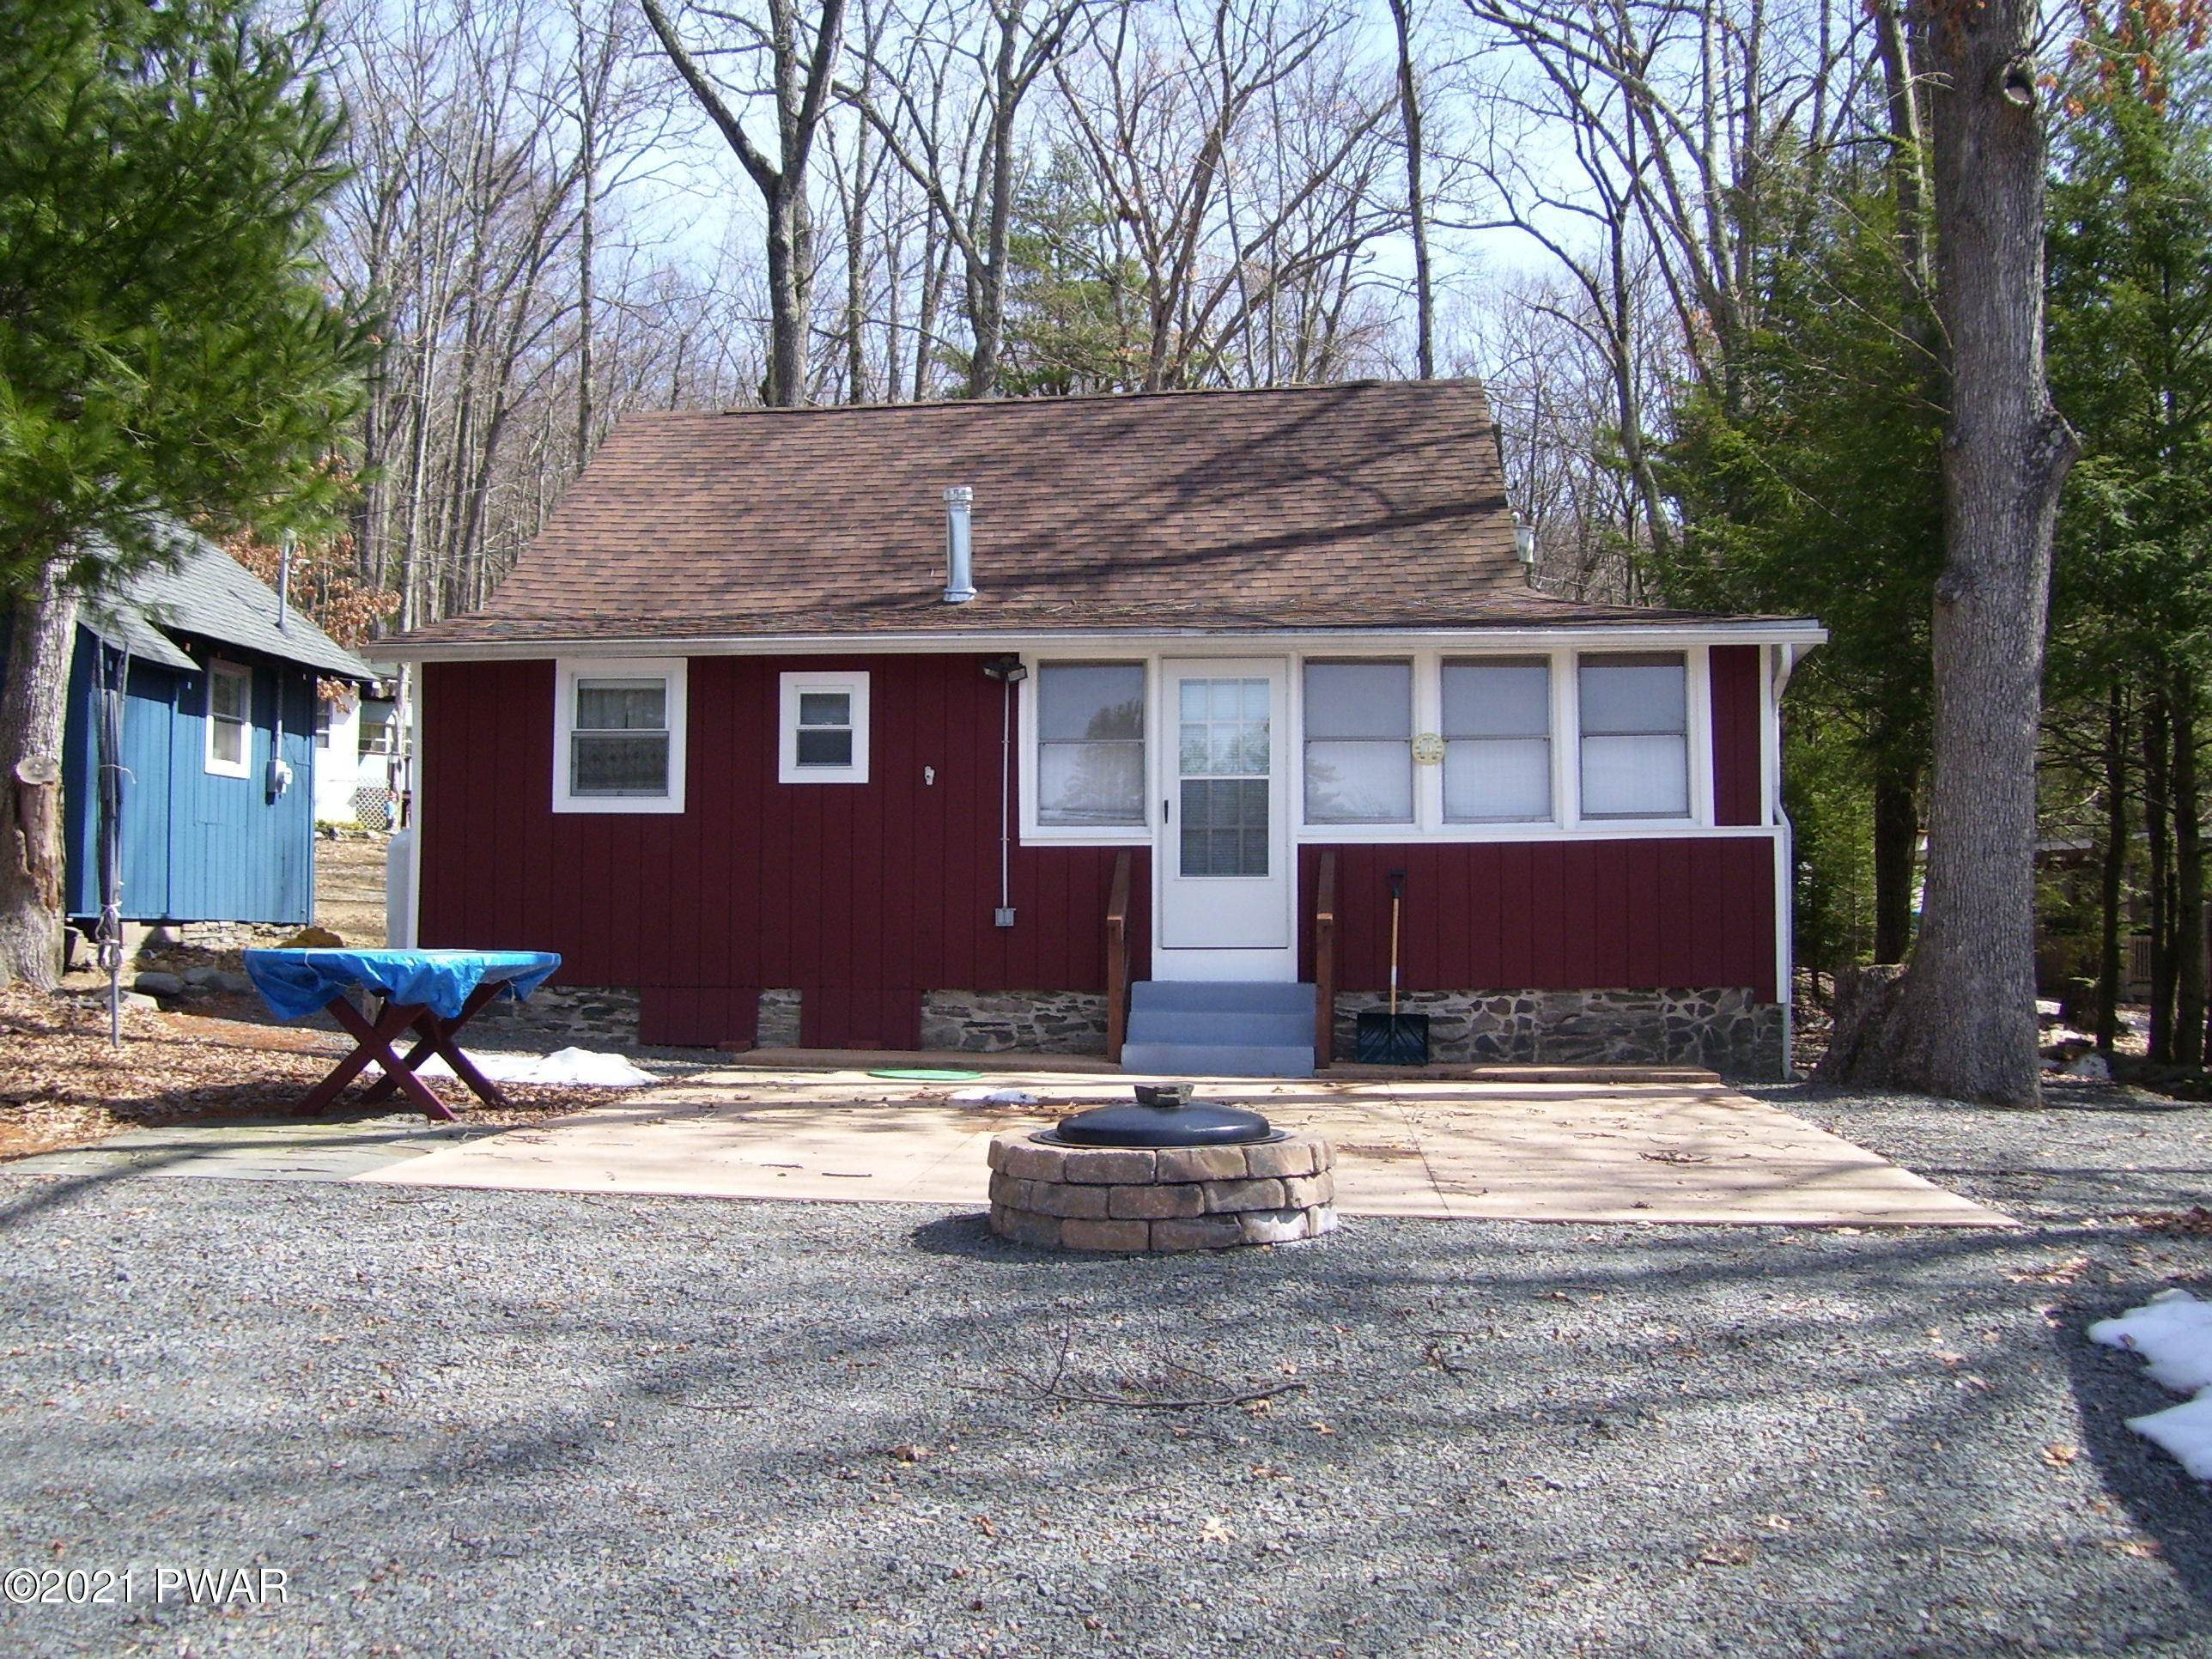 Property for Sale at 952 Well Rd Tafton, Pennsylvania 18464 United States